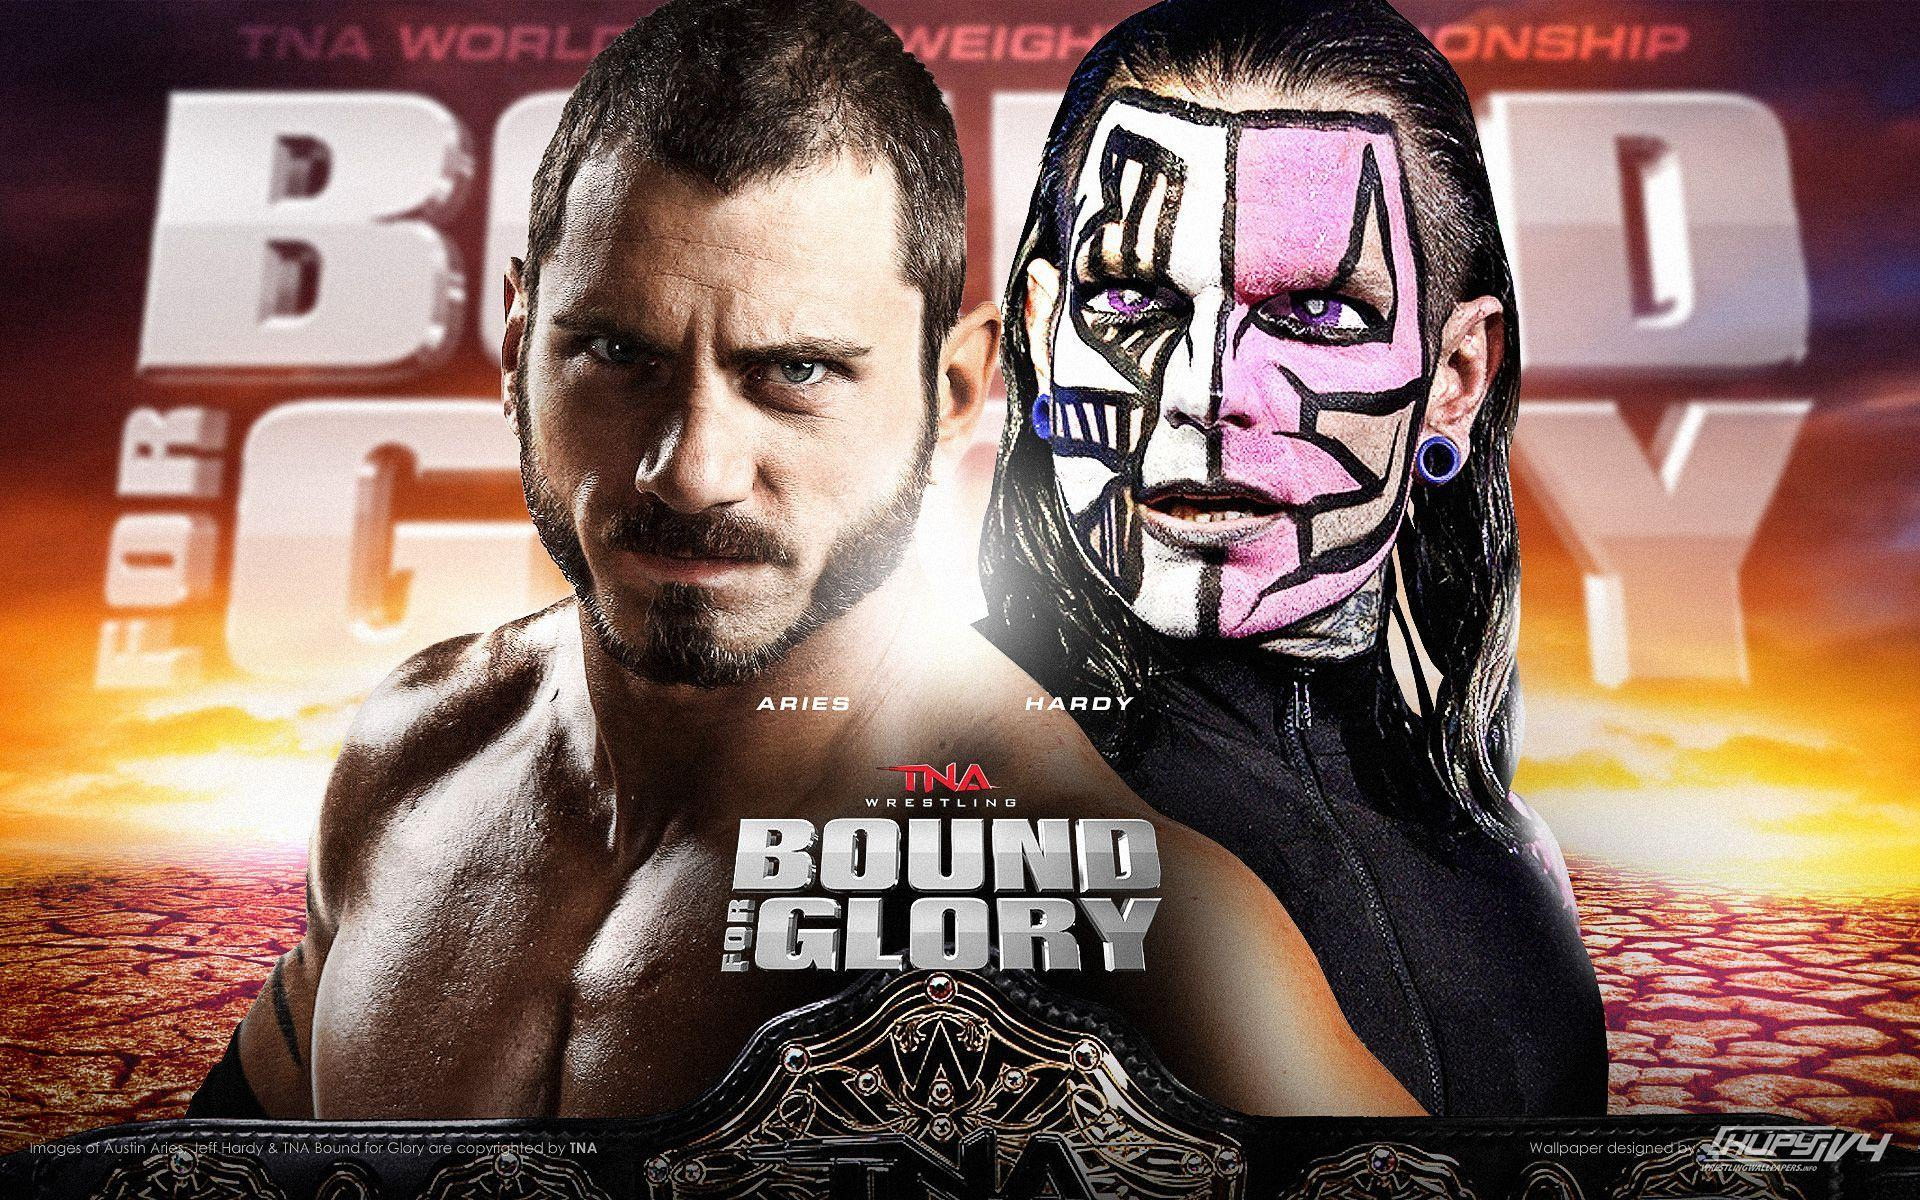 Wresteling wwe tna AUSTIN ARIES JEFF HARDY poster posters